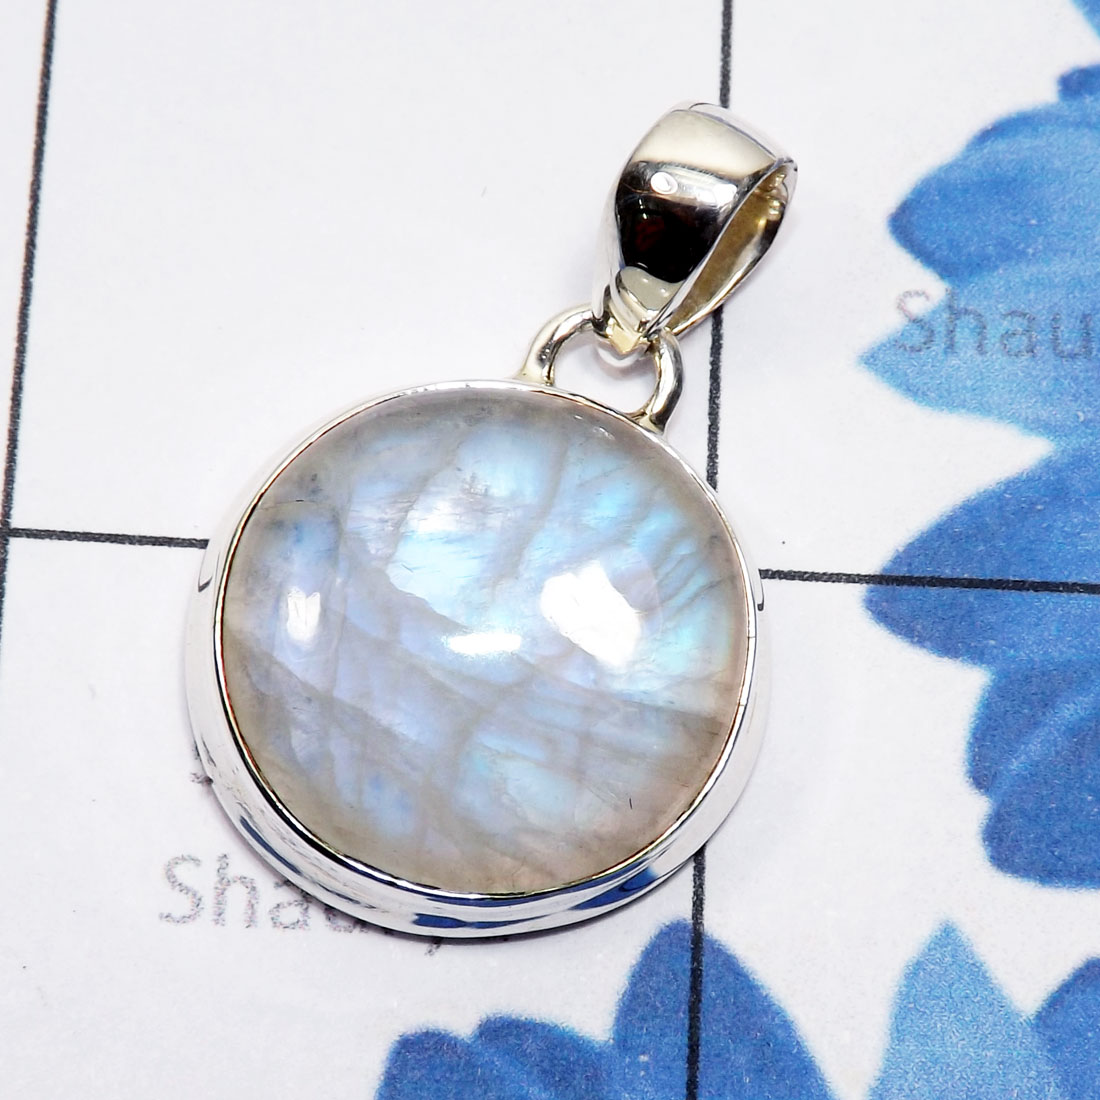 Rainbow Moonstone Cab D - ISP828-Natural Fire Cabochon Rainbow Moonstone 925 Sterling Silv